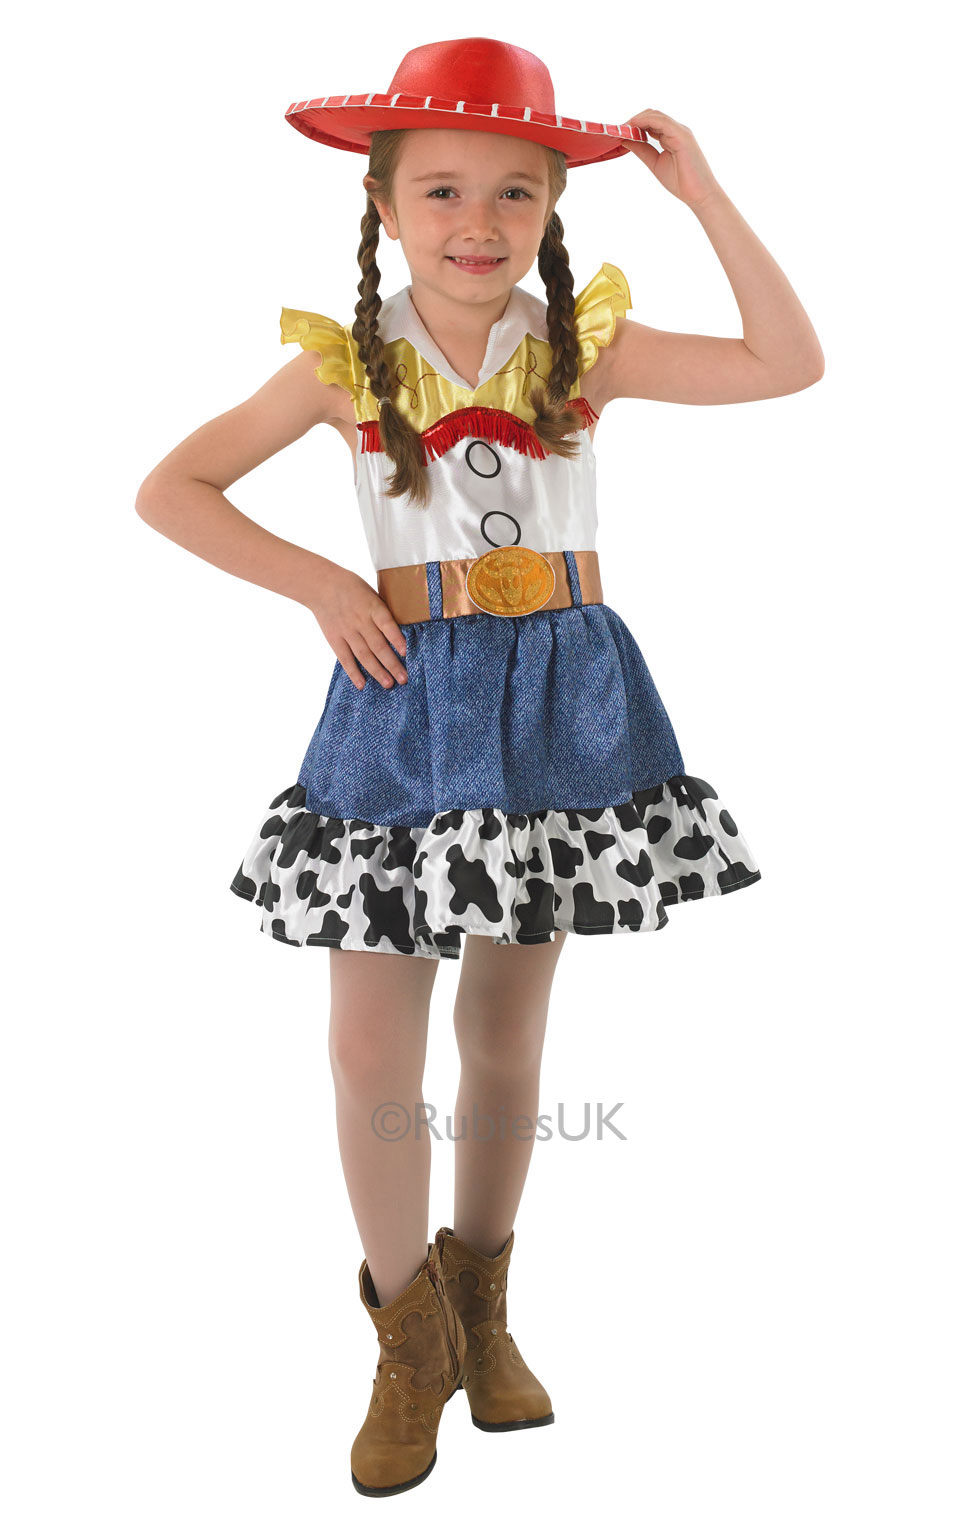 Jessie + Hat Toy Story Girls Fancy Dress Kids Cowgirl Disney ...